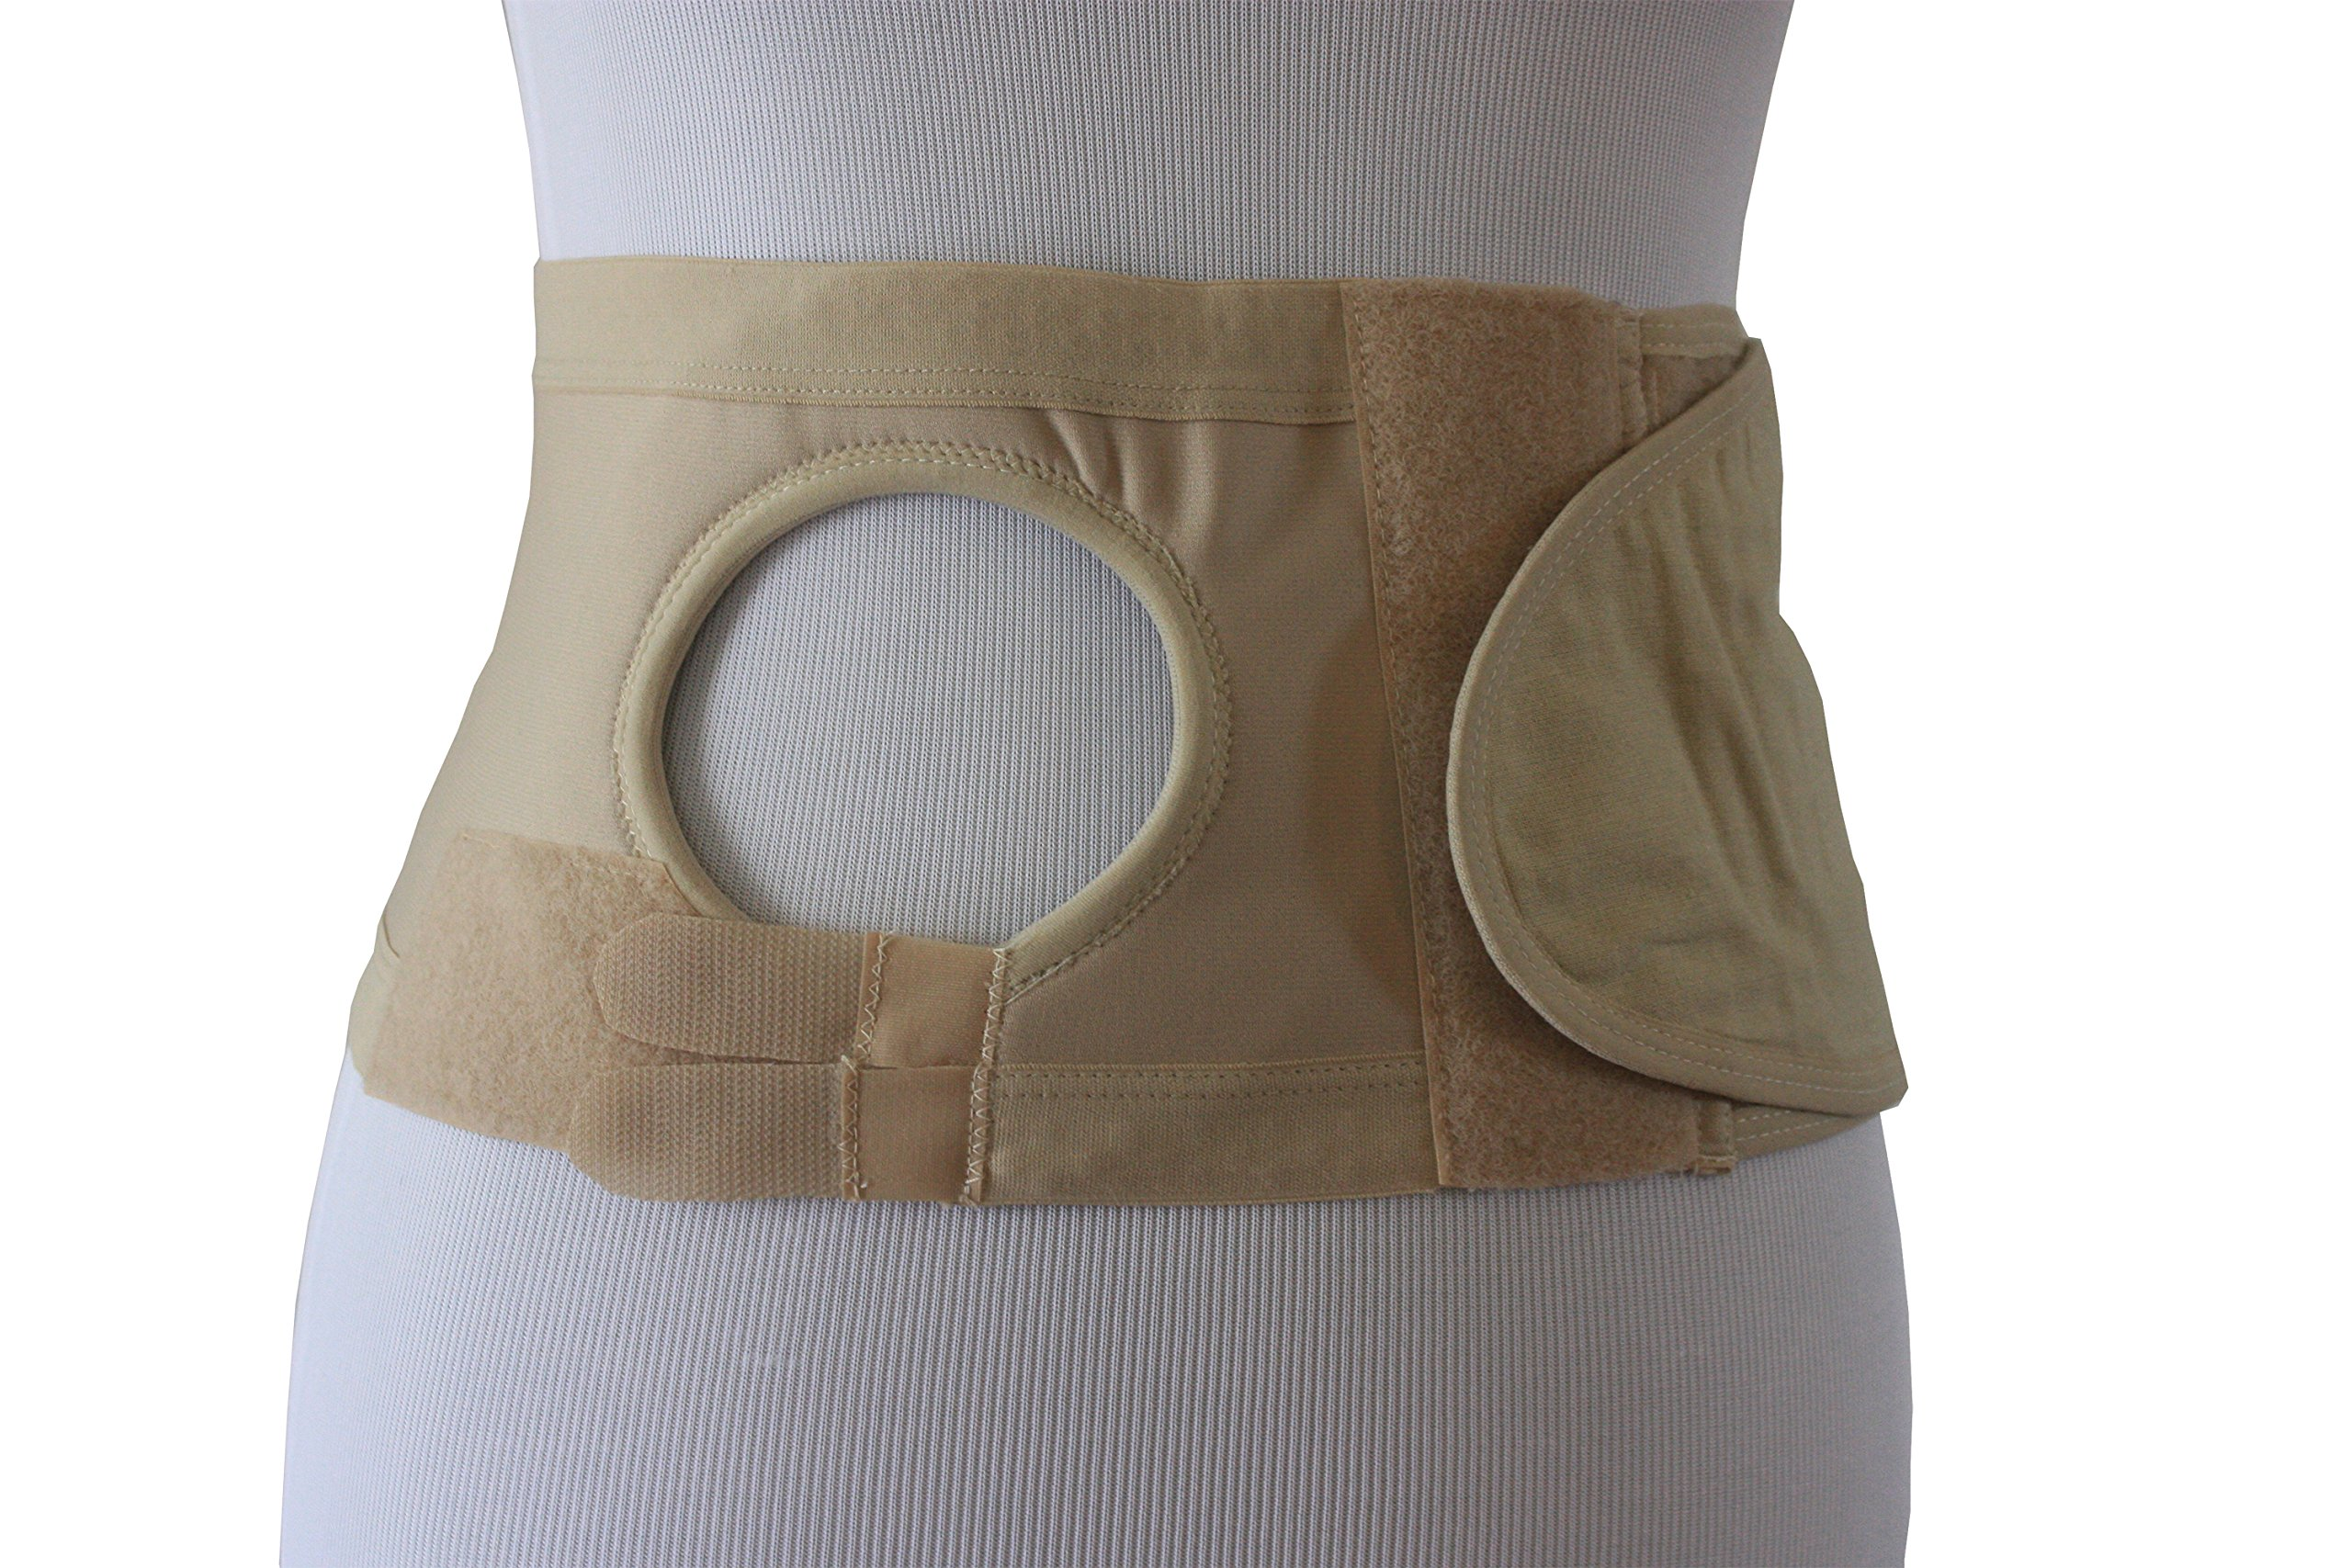 Safe n' Simple Right Unisex Ostomy Hernia Support Belt with Adjustable Hole, 6'', Beige, XX-Large by Safe n' Simple